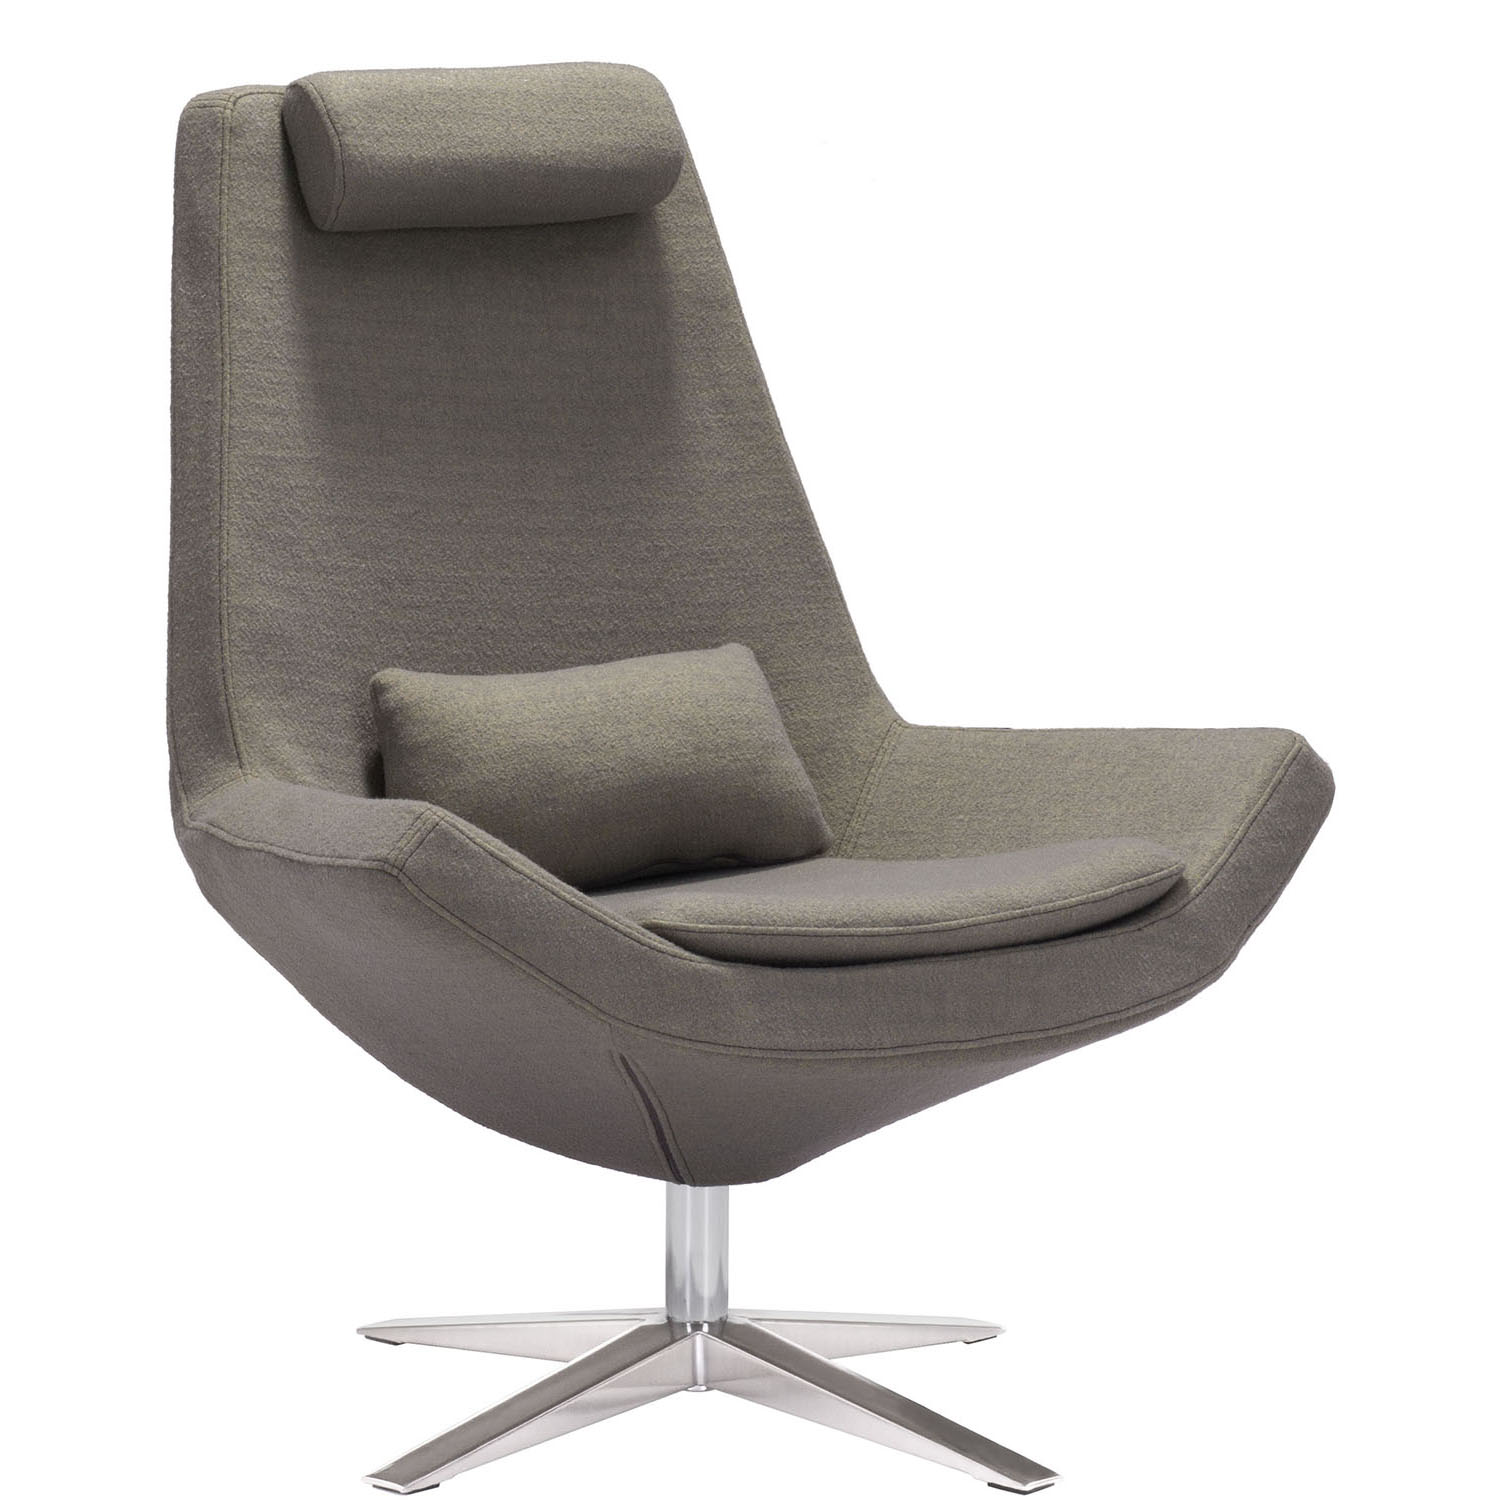 zuo swivel chair urban dictionary modern olive green bruges occasional